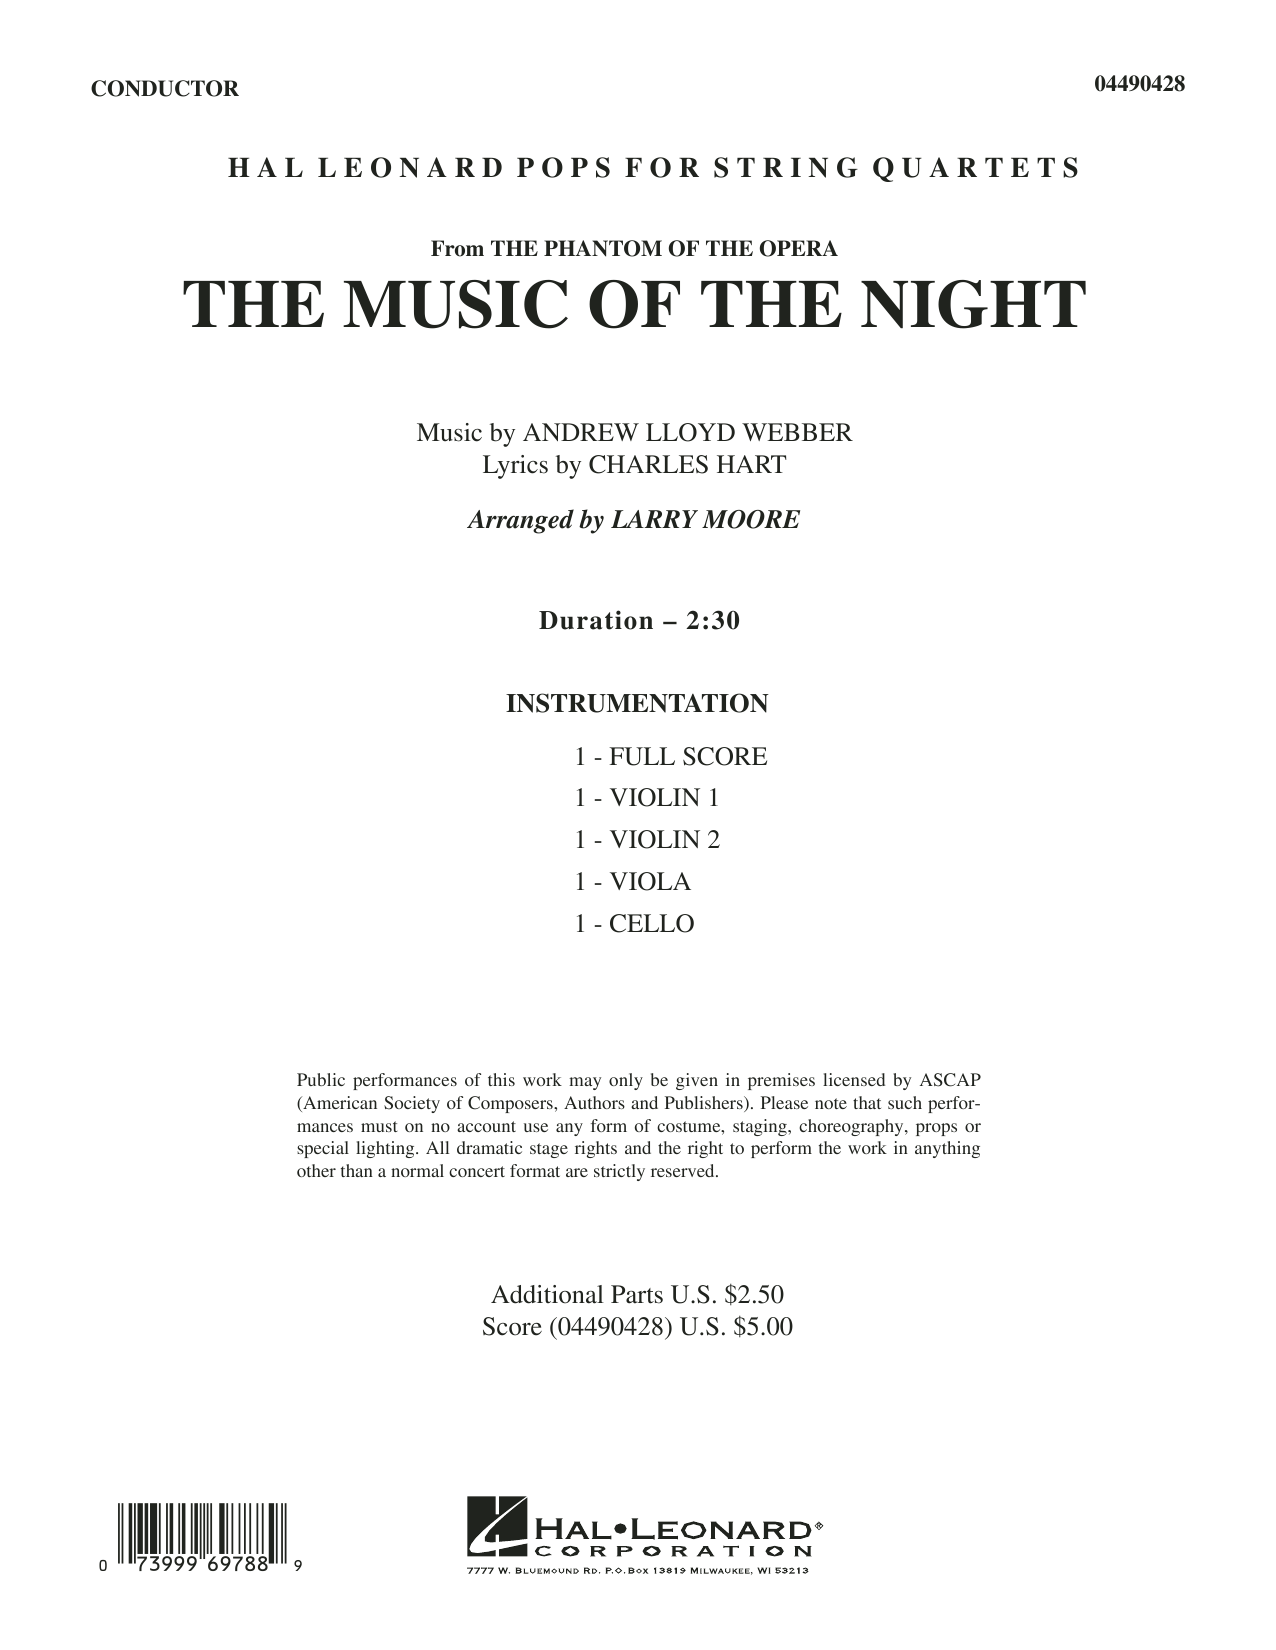 Larry Moore The Music of the Night (from The Phantom of the Opera) - Full Score sheet music notes and chords. Download Printable PDF.